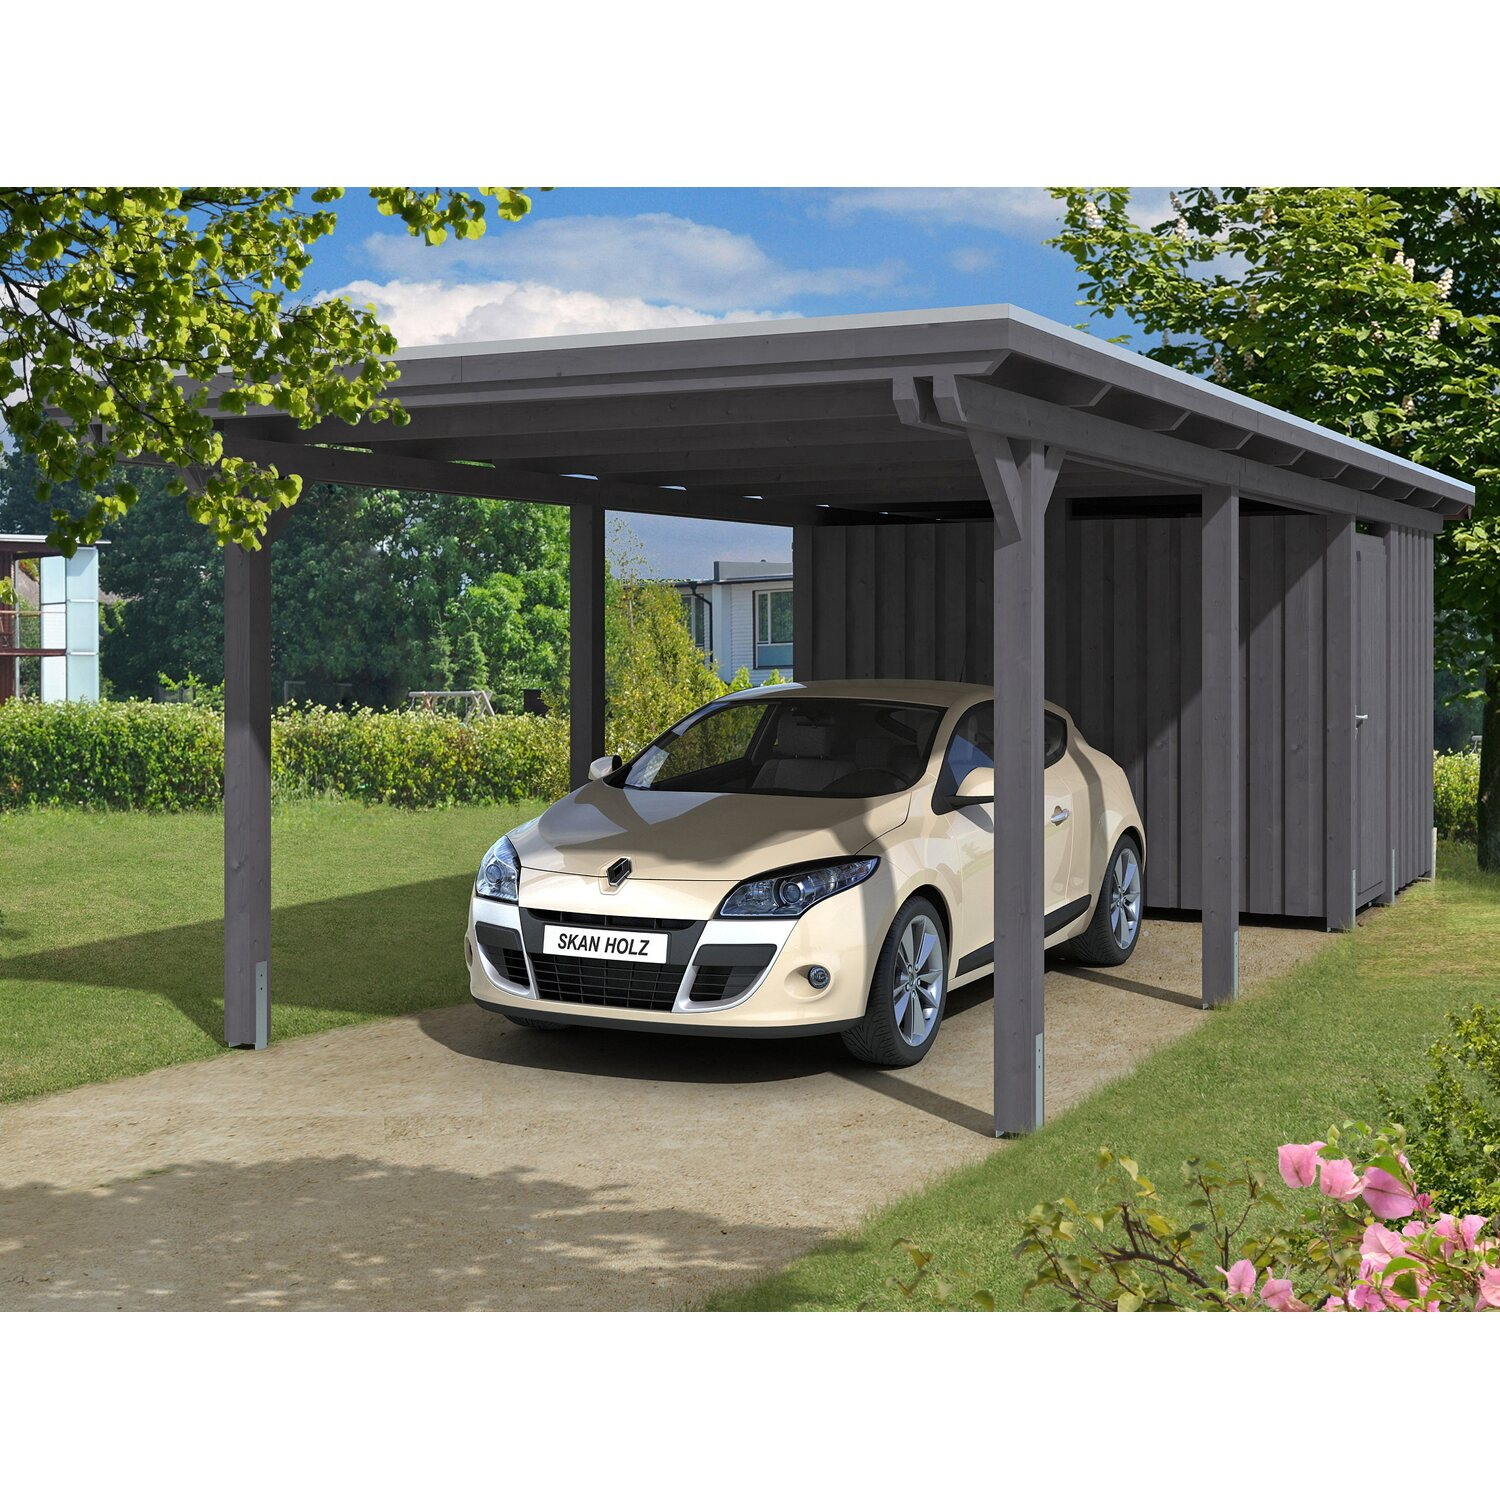 skan holz carport emsland 354 cm x 846 cm mit abstellraum schiefergrau kaufen bei obi. Black Bedroom Furniture Sets. Home Design Ideas